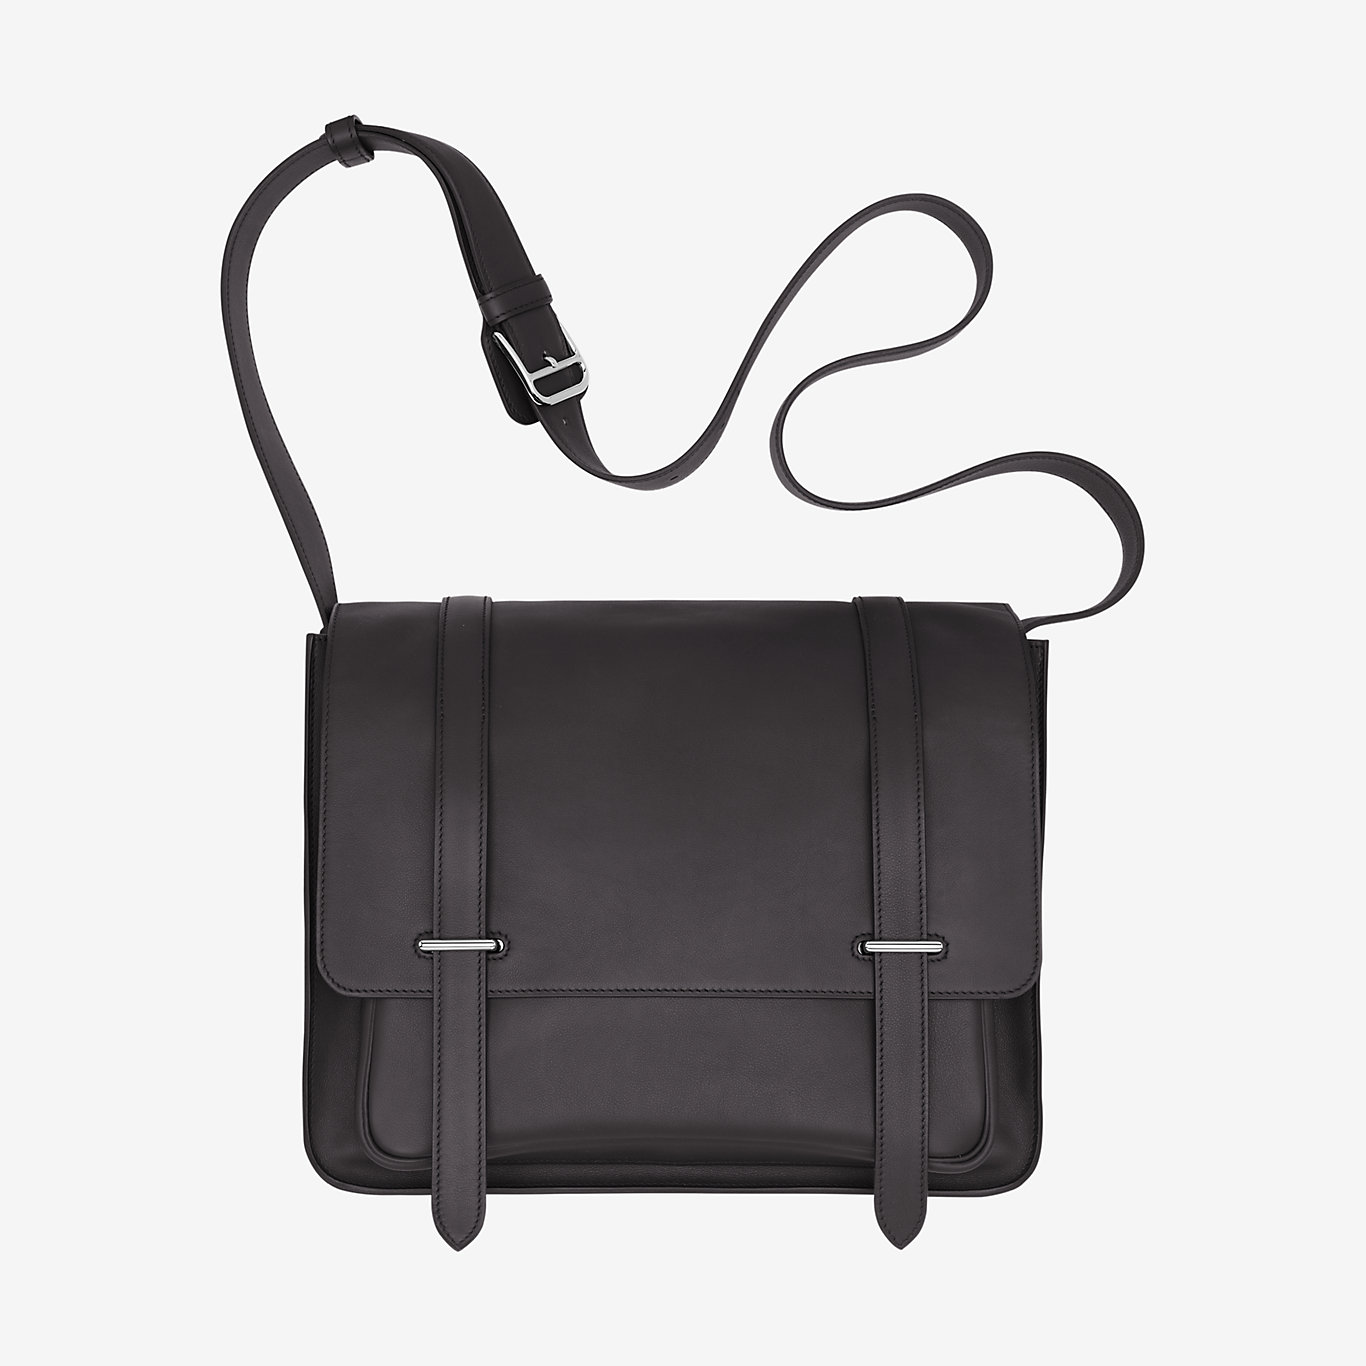 Steve 35 messenger bag - front